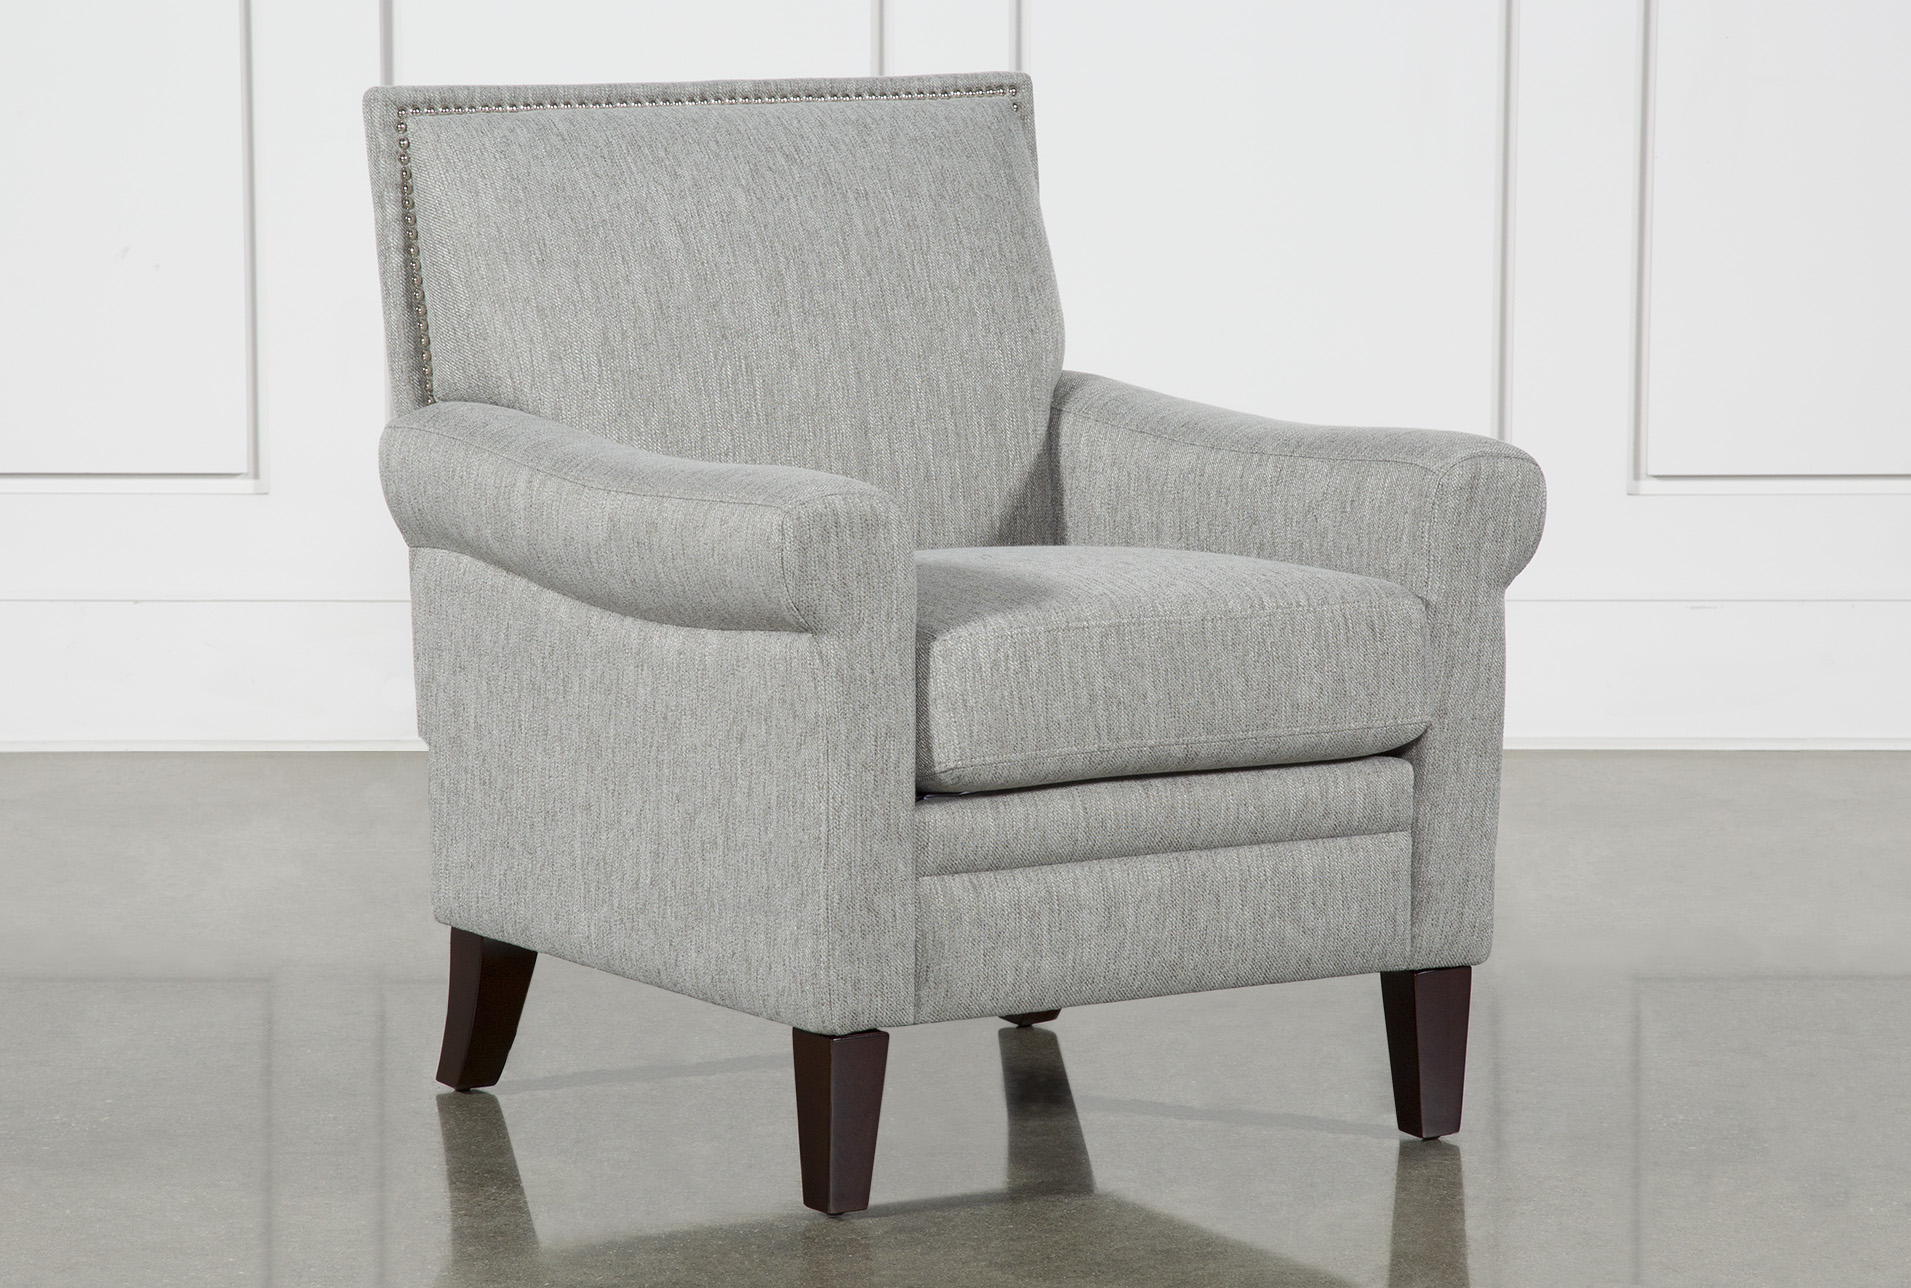 Ordinaire Richmond Accent Chair (Qty: 1) Has Been Successfully Added To Your Cart.